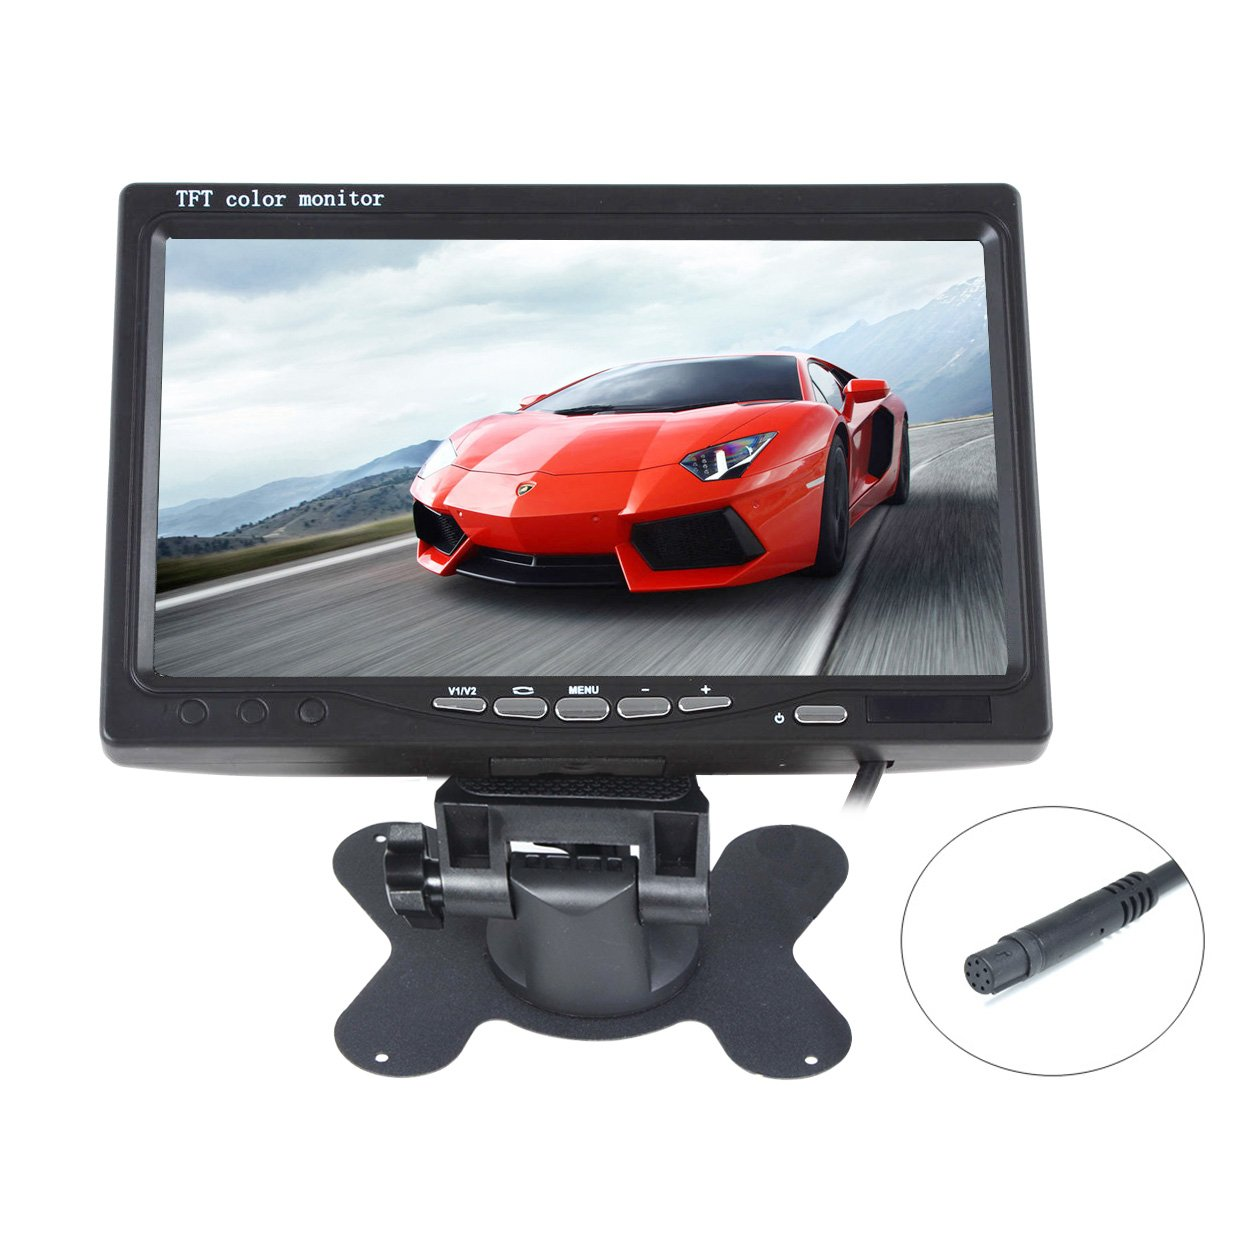 Kasionvi 7 Inch Tft-lcd Car Monitor 2 Video Input Car Rearview Headrest Monitor DVD VCR Monitor with Remote and Stand & Support Rotating the Screen 800*480rgb 8pin Connect